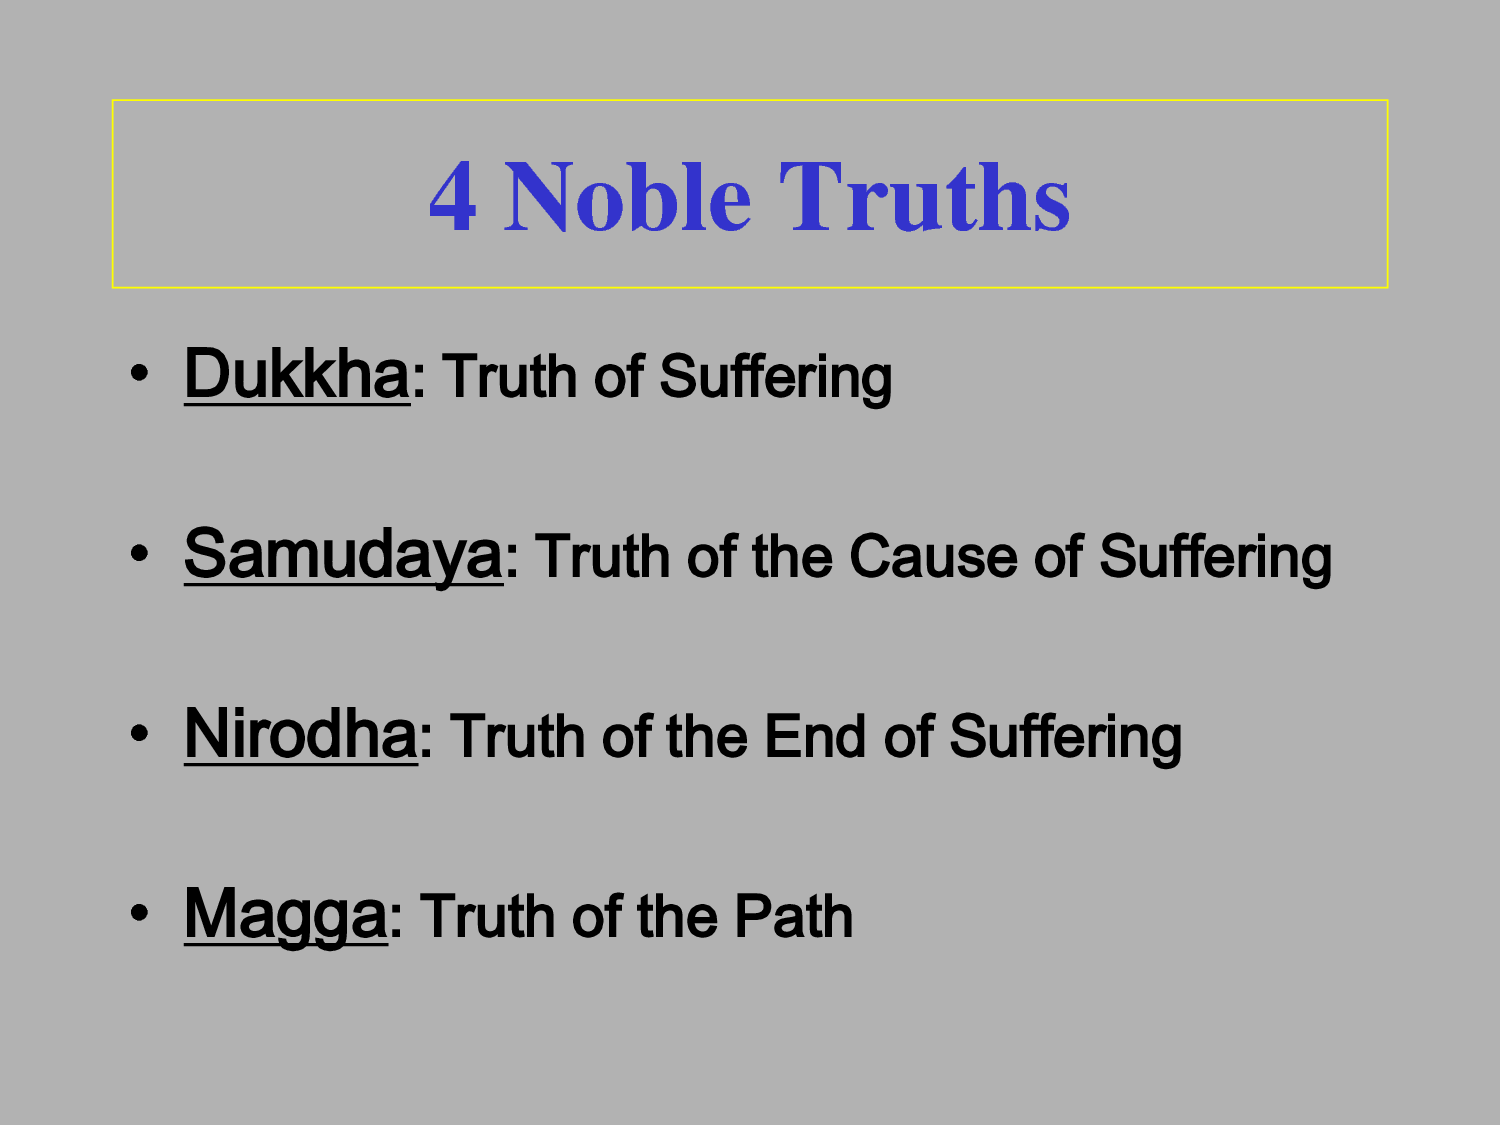 The Four Noble Truths Simplified | Noble Truths | His Holiness ...